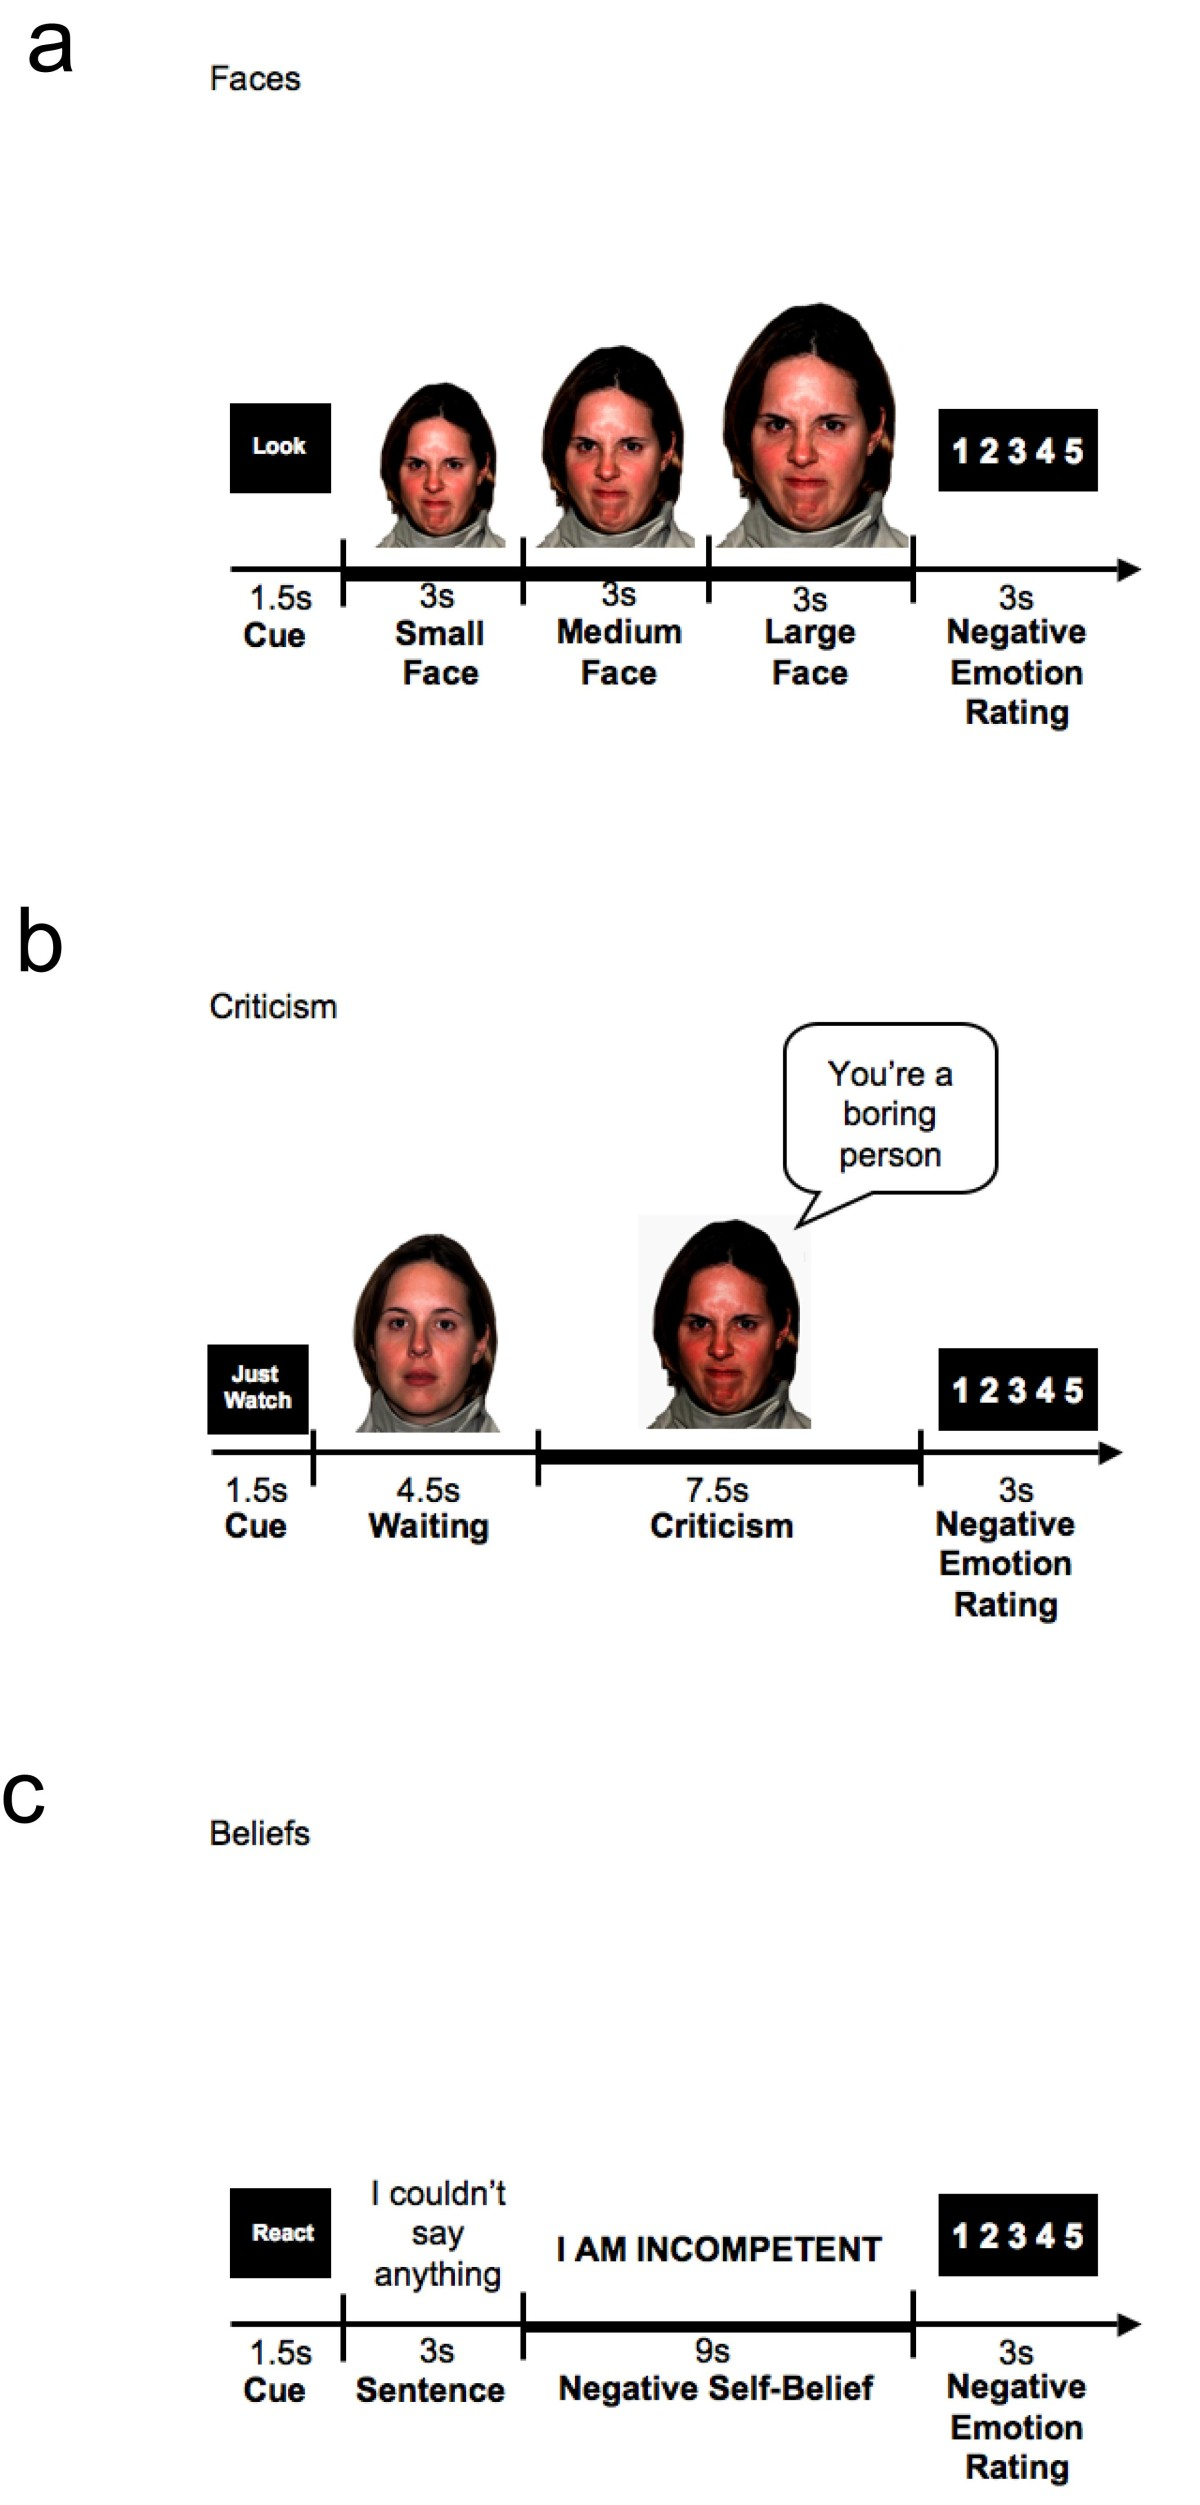 https://static-content.springer.com/image/art%3A10.1186%2F2045-5380-3-5/MediaObjects/13587_2012_Article_39_Fig1_HTML.jpg